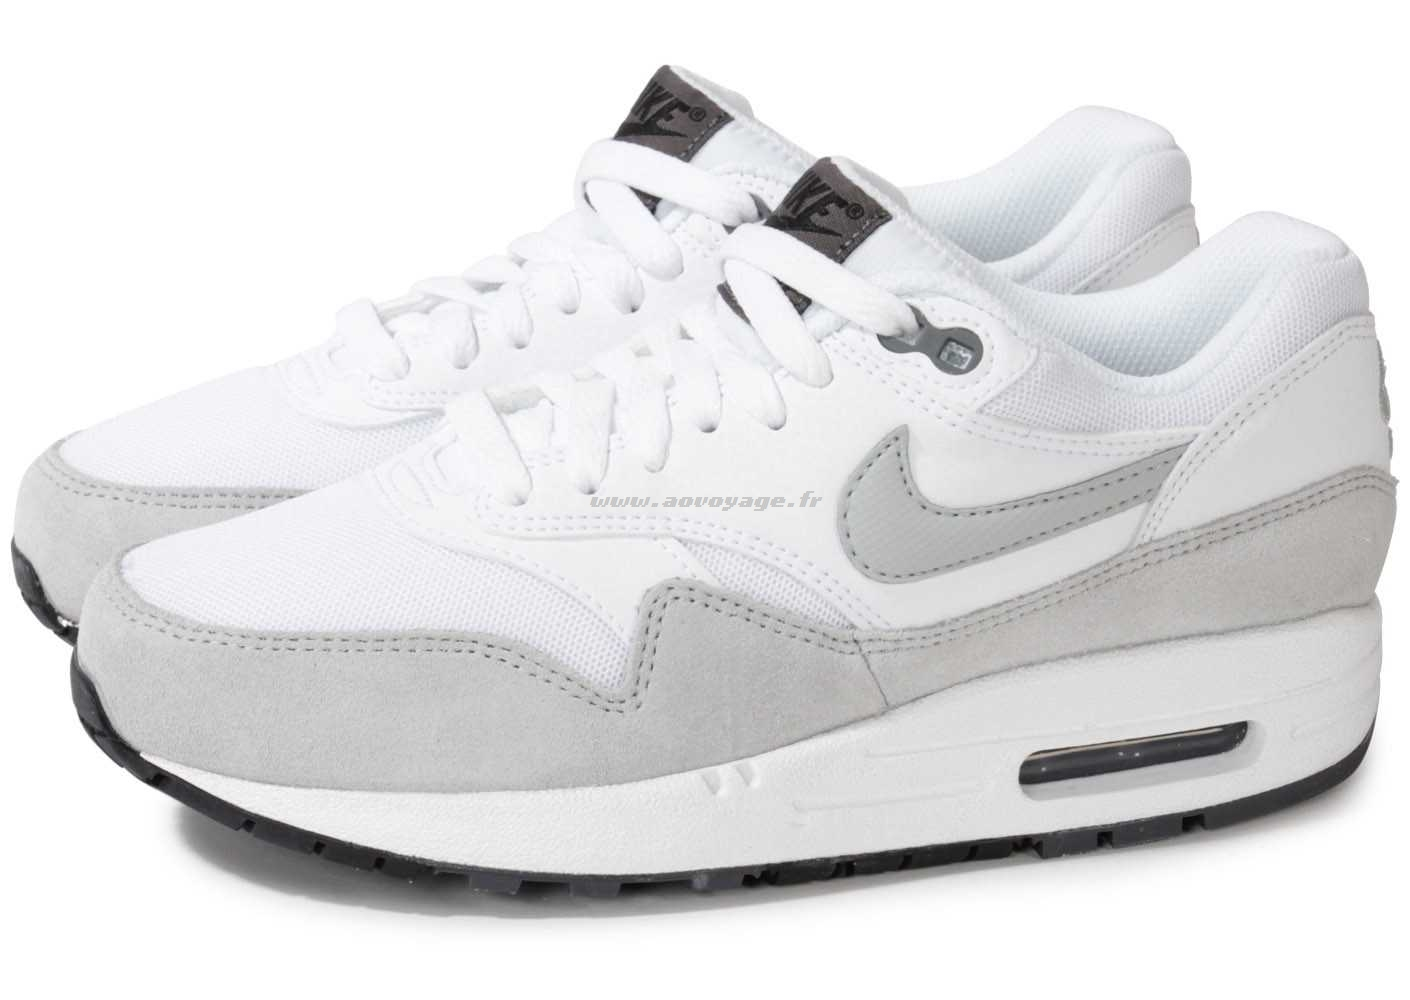 air max 1 essential femme grise blanc WISH- XvyZUsG